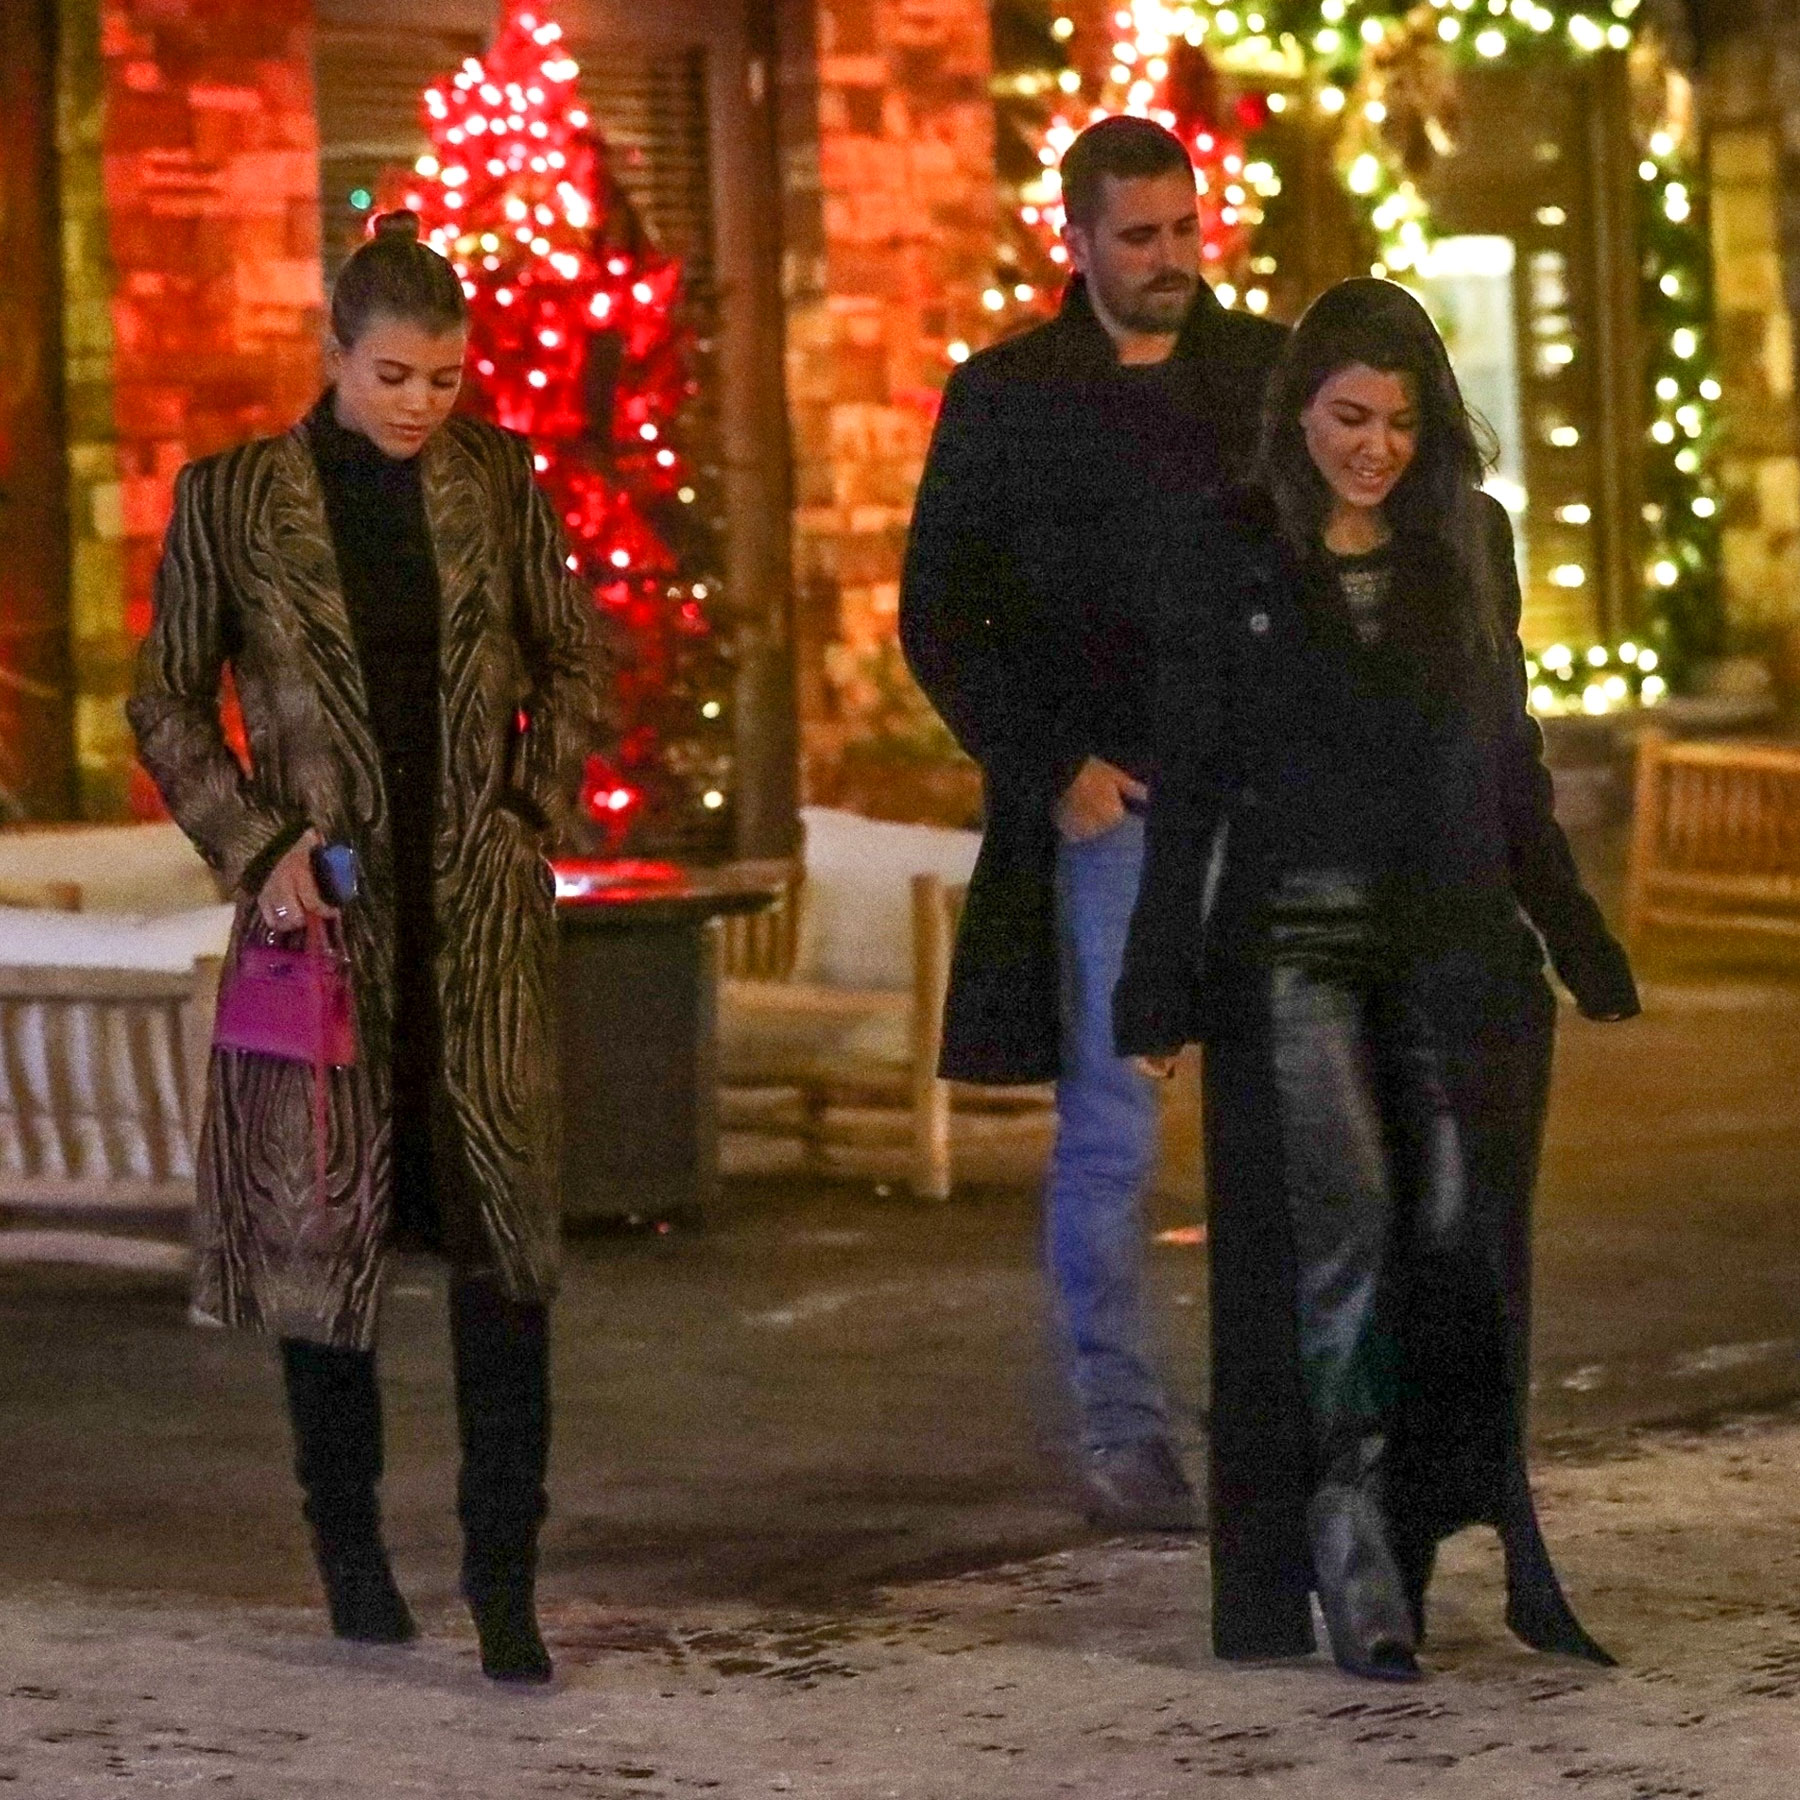 *EXCLUSIVE* Kourtney Kardashian takes on cold Aspen winds with see through top while out with Scott and Sofia